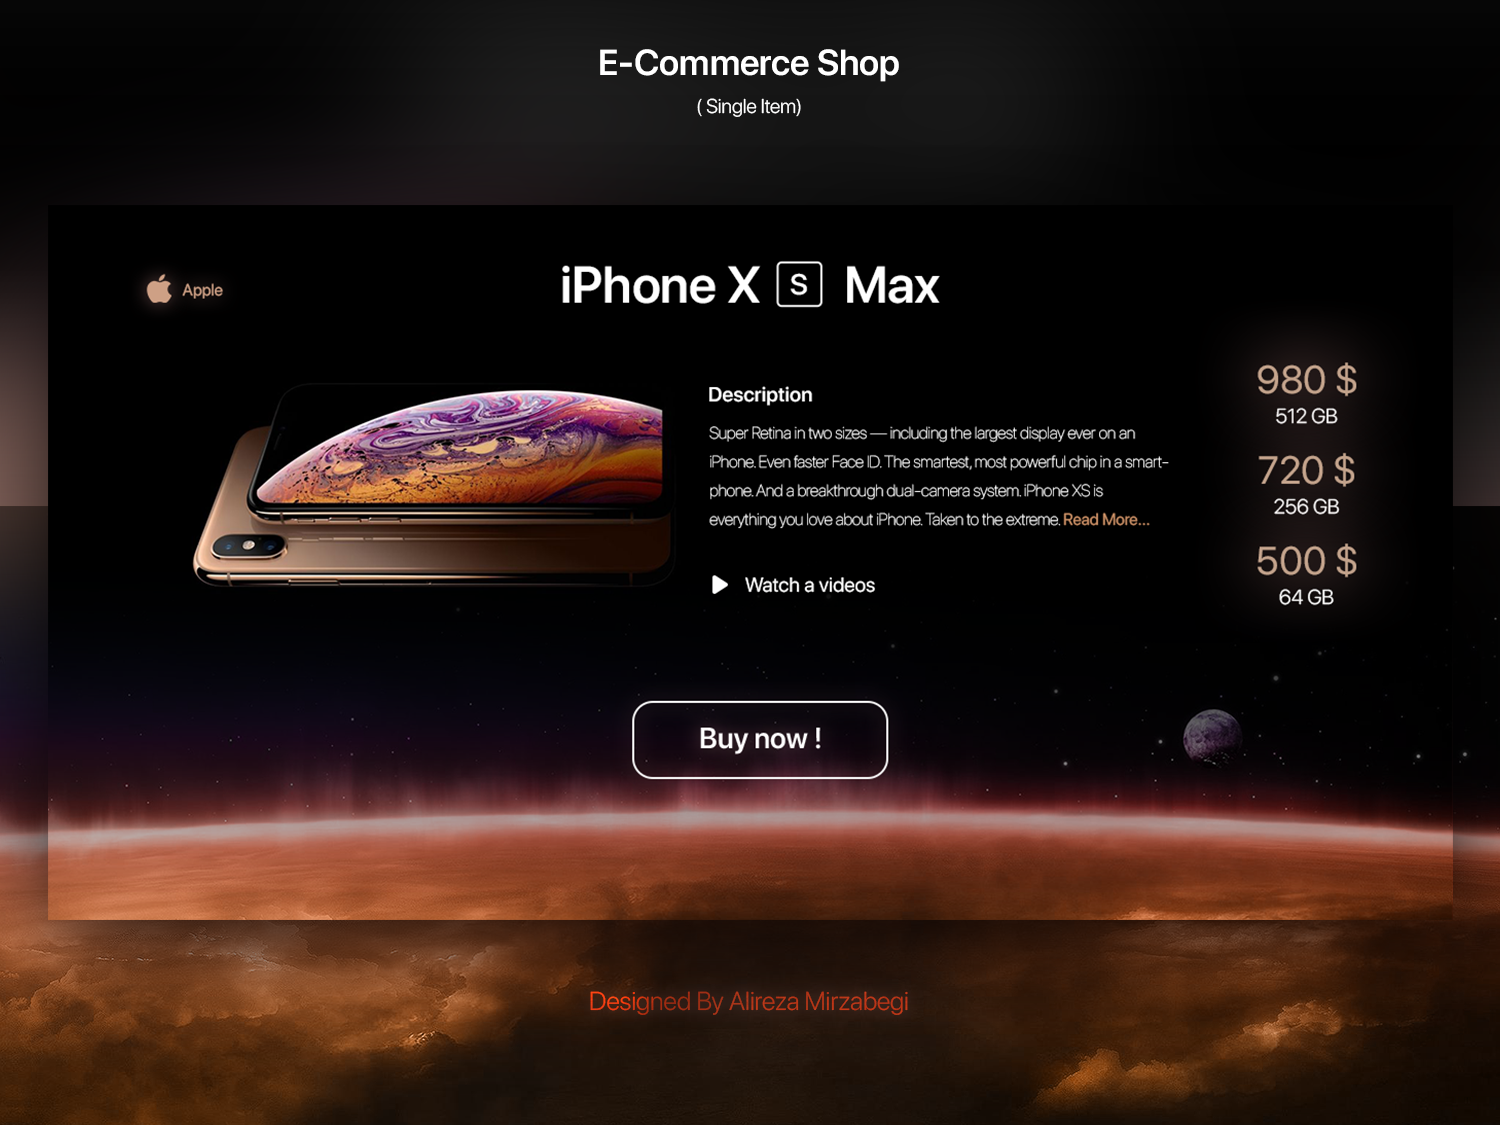 E Commerce Shop Daily Ui apple iphonexs iphonex iphone xs max iphone xs iphone x iphone day challenge dailyui daily e commerce e commerce shop e-commerce e-commerce-shop website web design ux ui